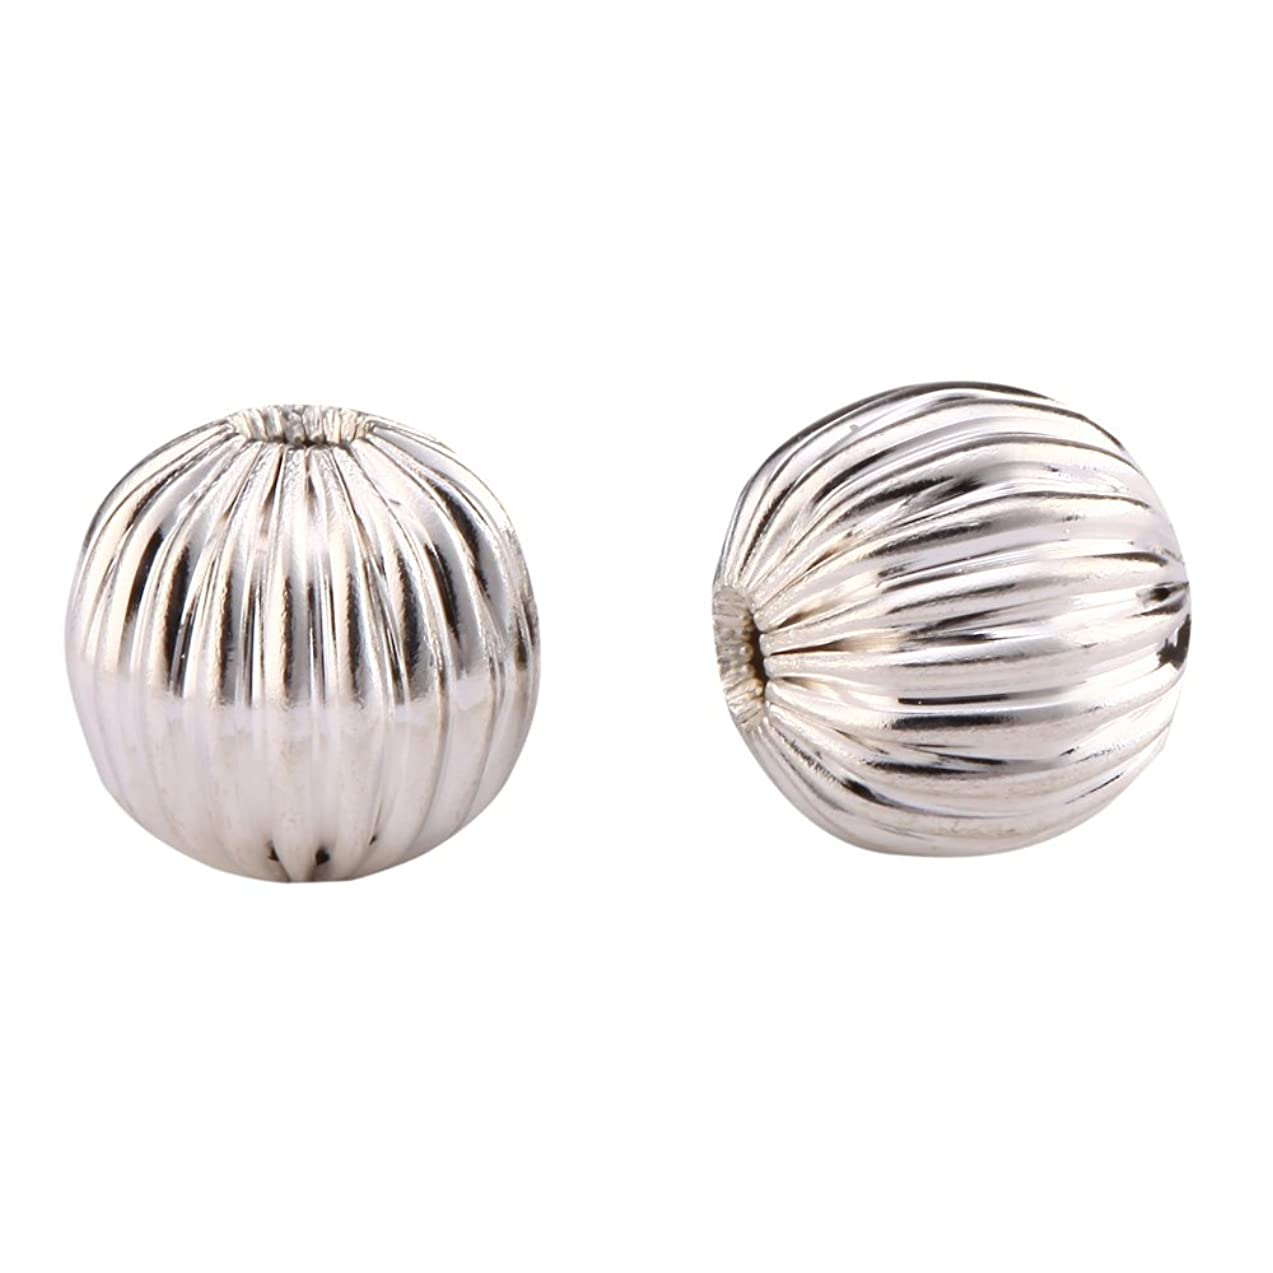 200pcs Beautiful Mellon Spacer Beads 6mm Metal Beads Sterling Silver Plated Silver Beads   Top Quality CF109-6